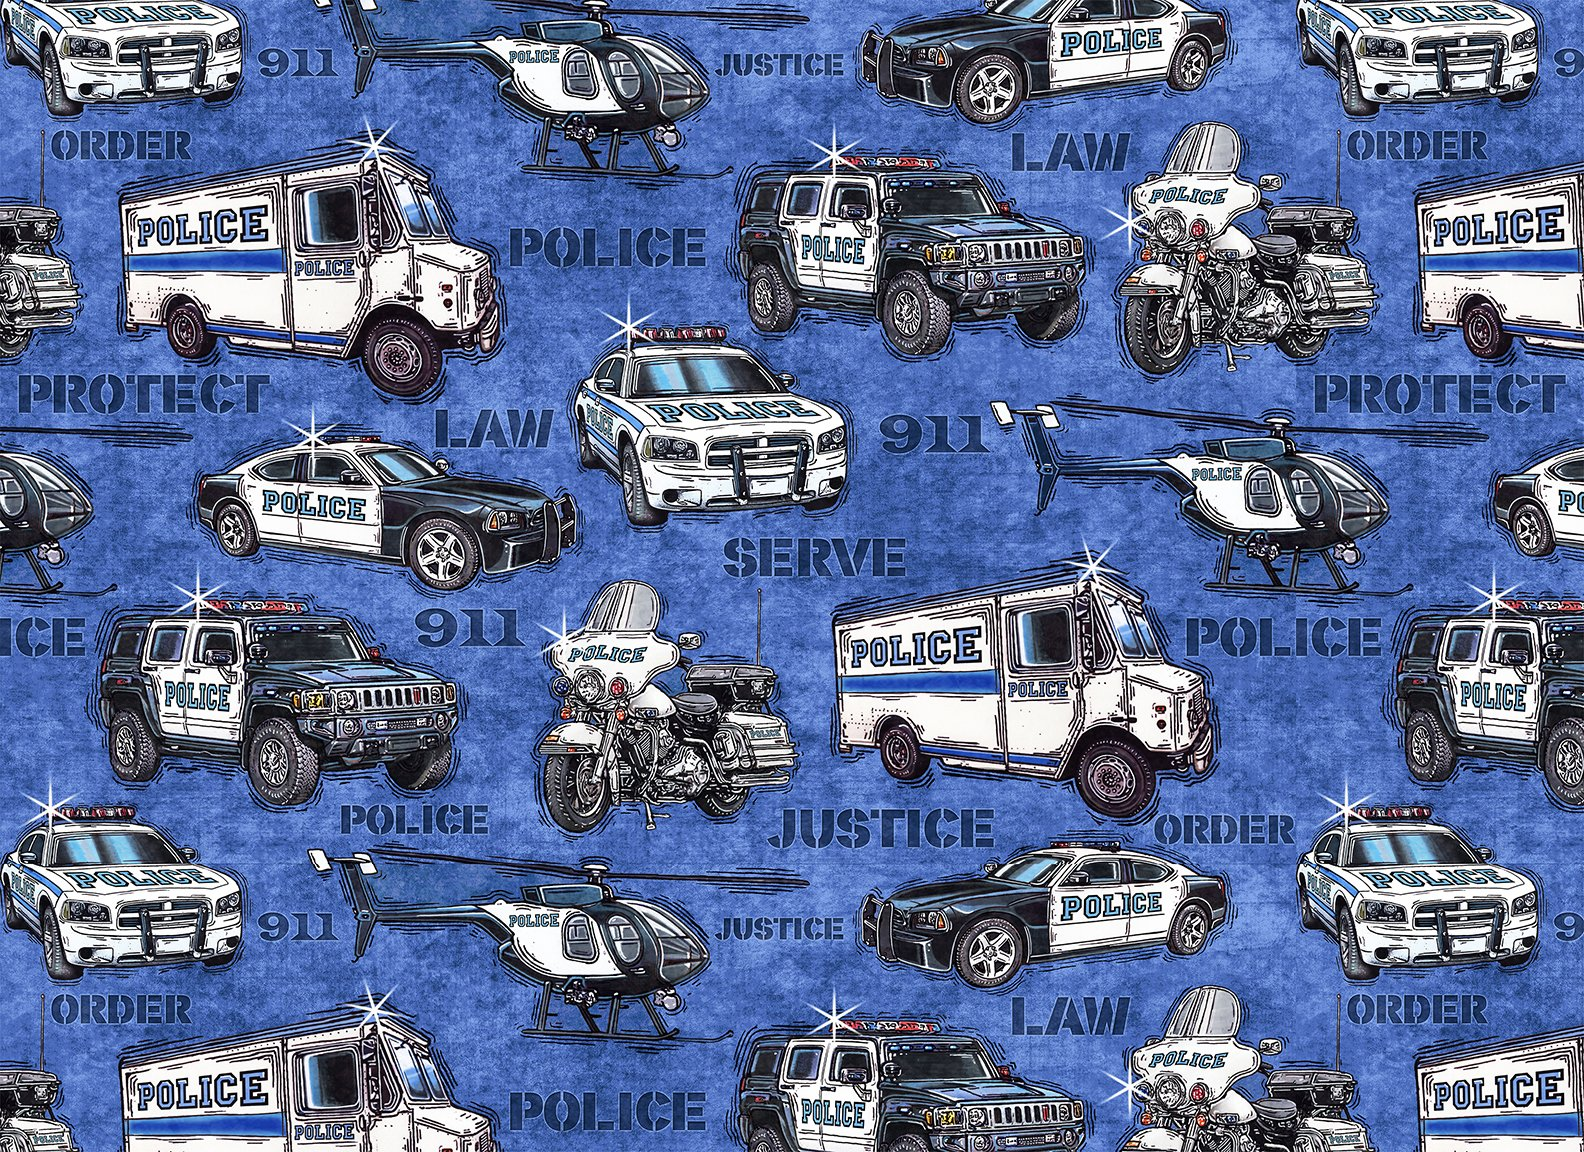 QT - Protect & Serve-Police Vehicles/Blue - 26127-B